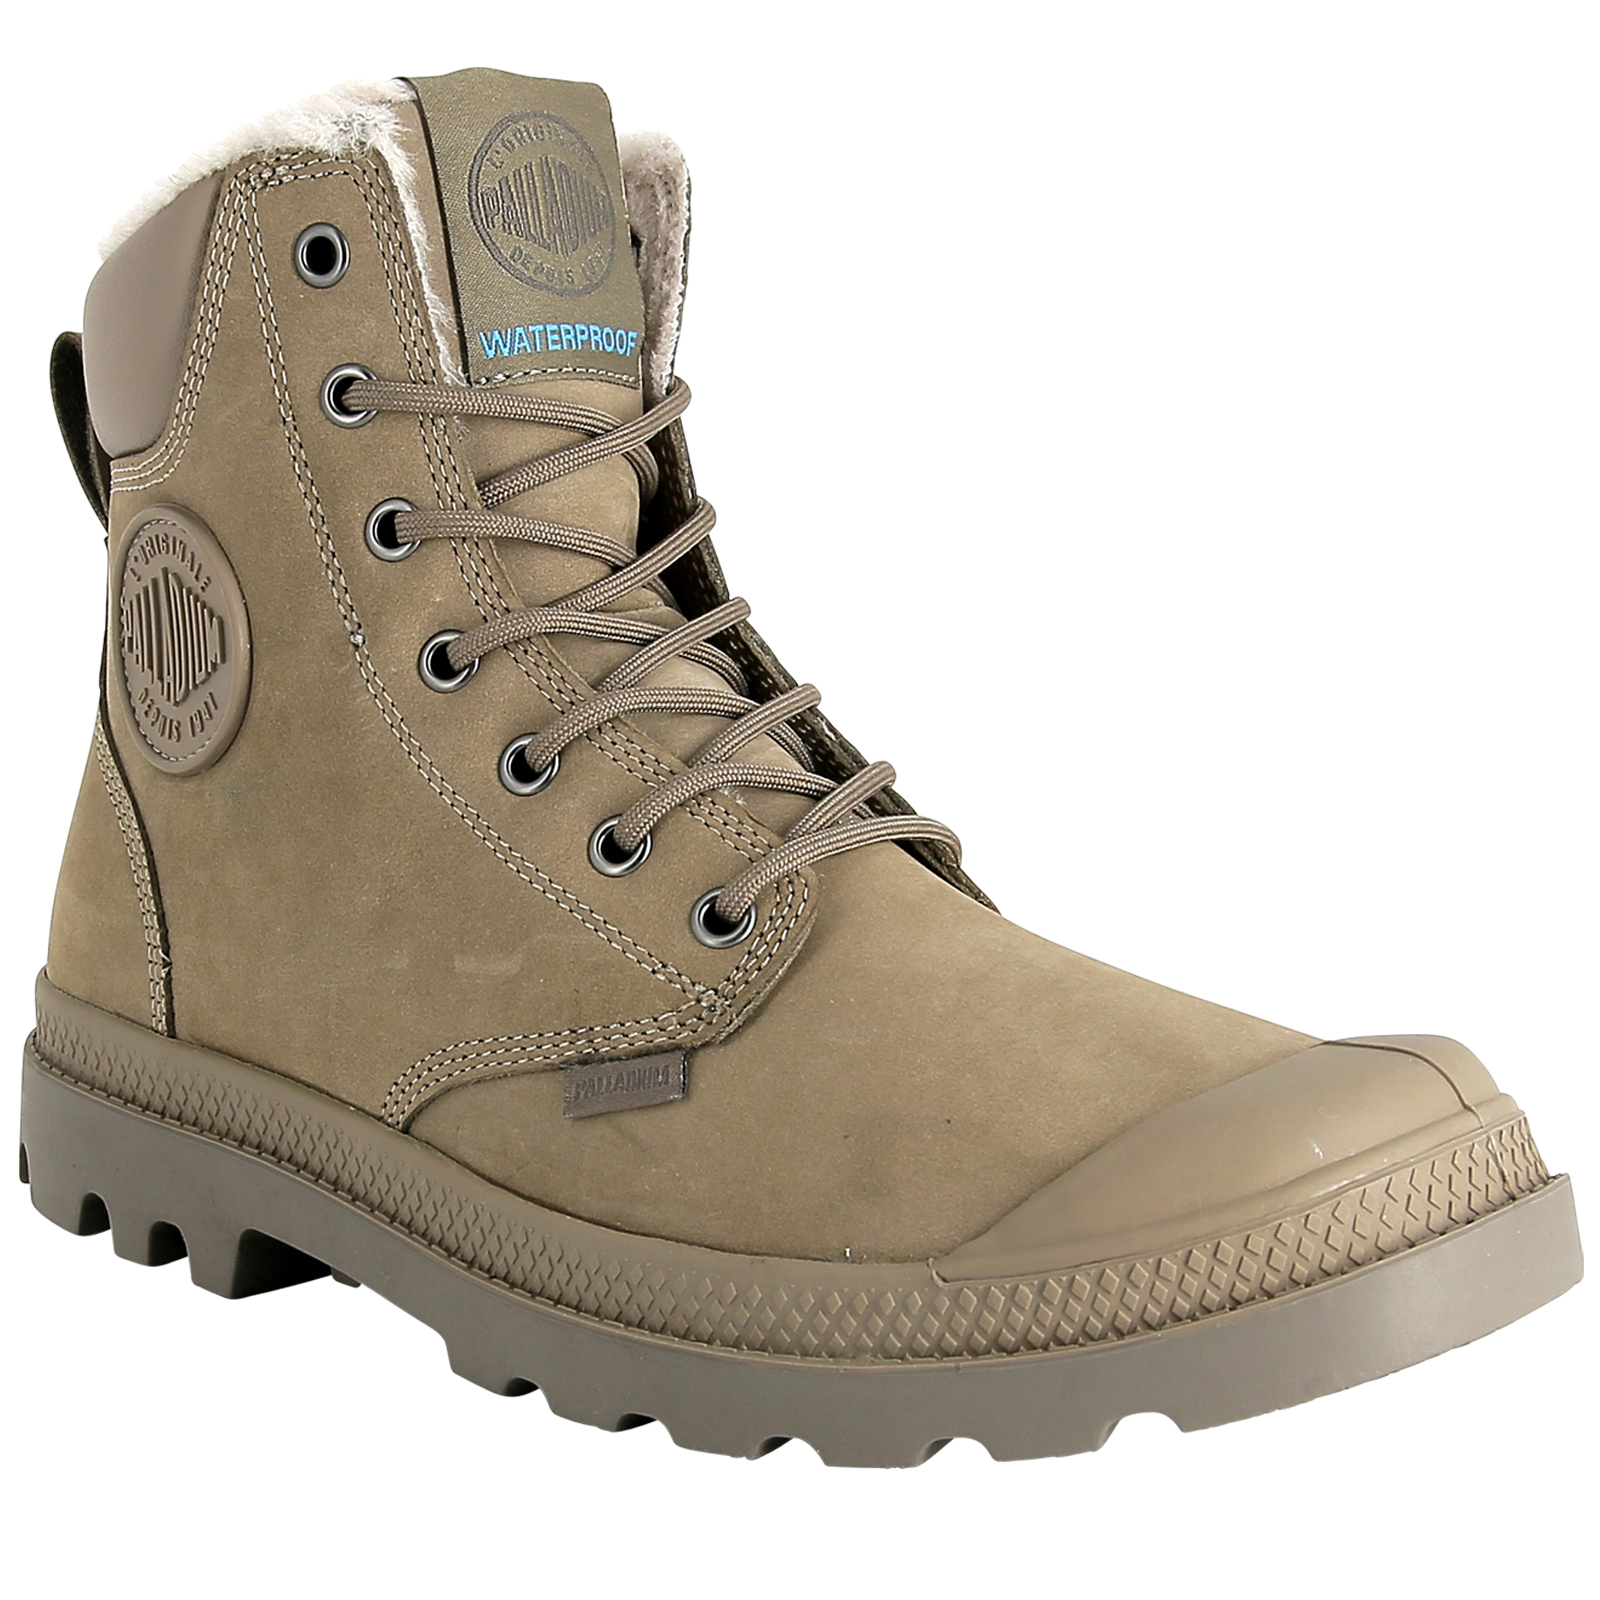 Palladium-Mens-Pampa-Sport-Cuff-Waterproof-Suede-Leather-Shoe-Wool-Lined-Boots thumbnail 27